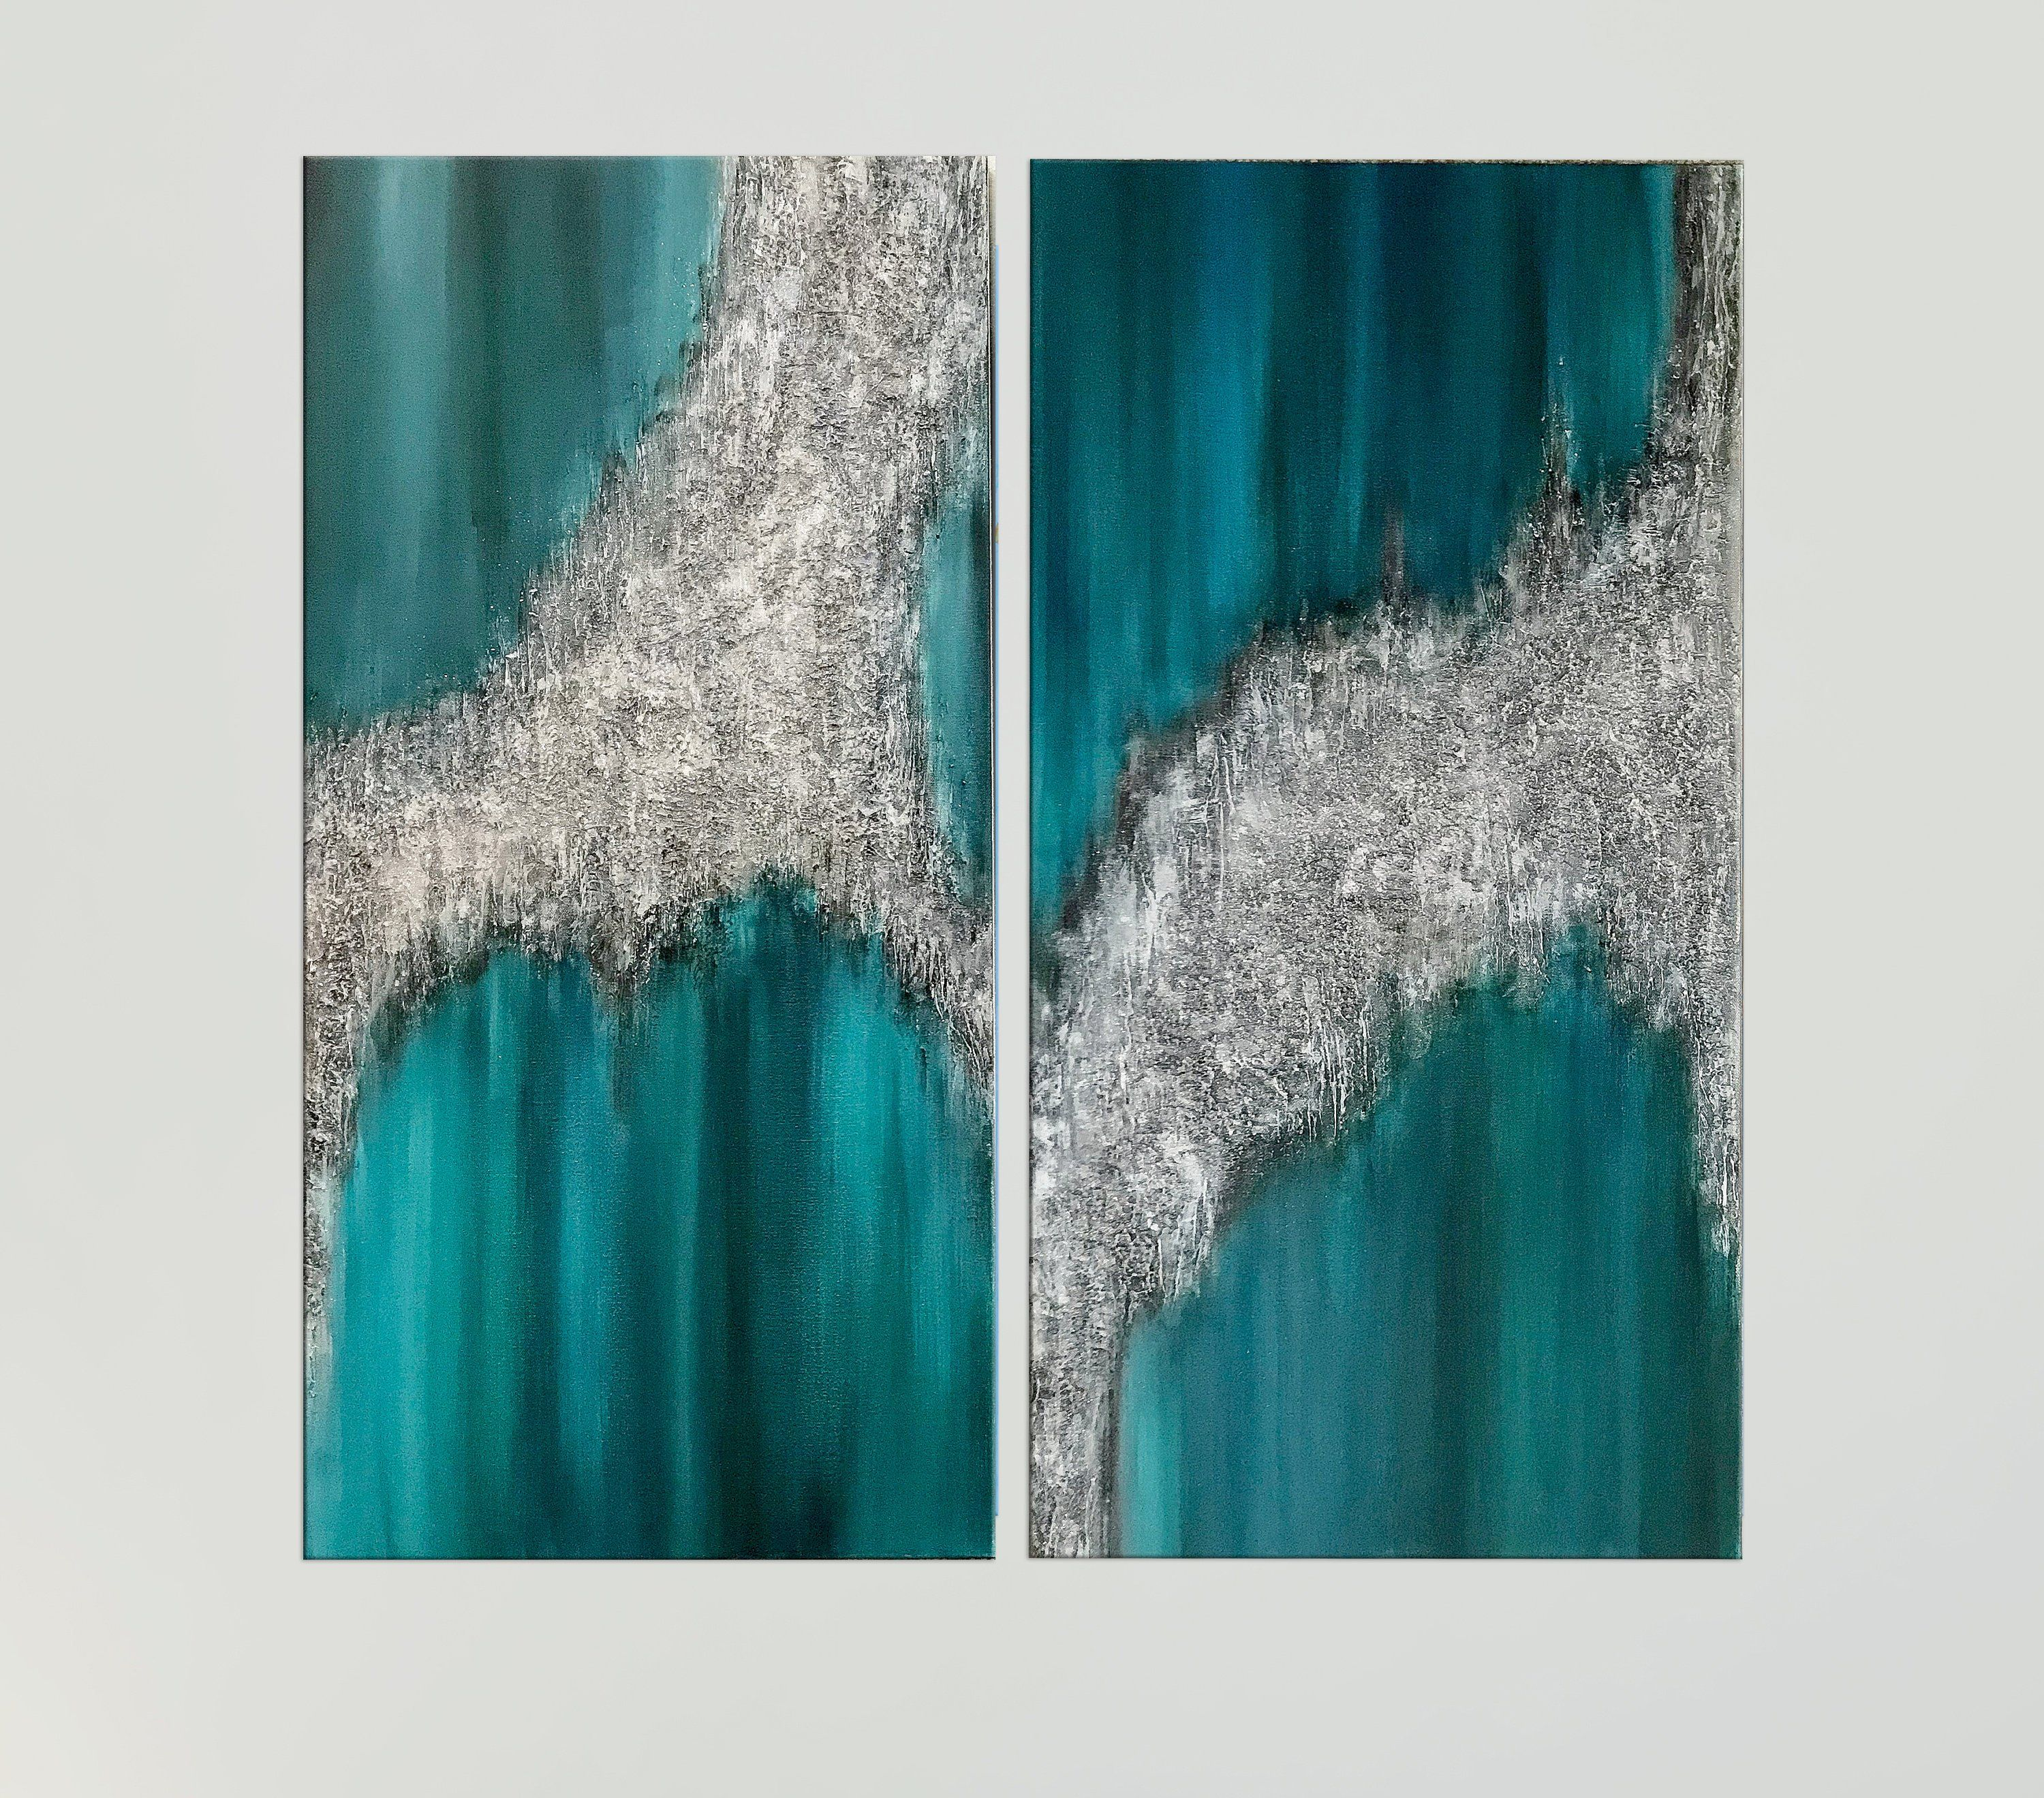 Teal Wall Art Silver Glitter Art Modern Abstract Art Canvas Etsy Teal Wall Art Modern Art Abstract Glitter Wall Art